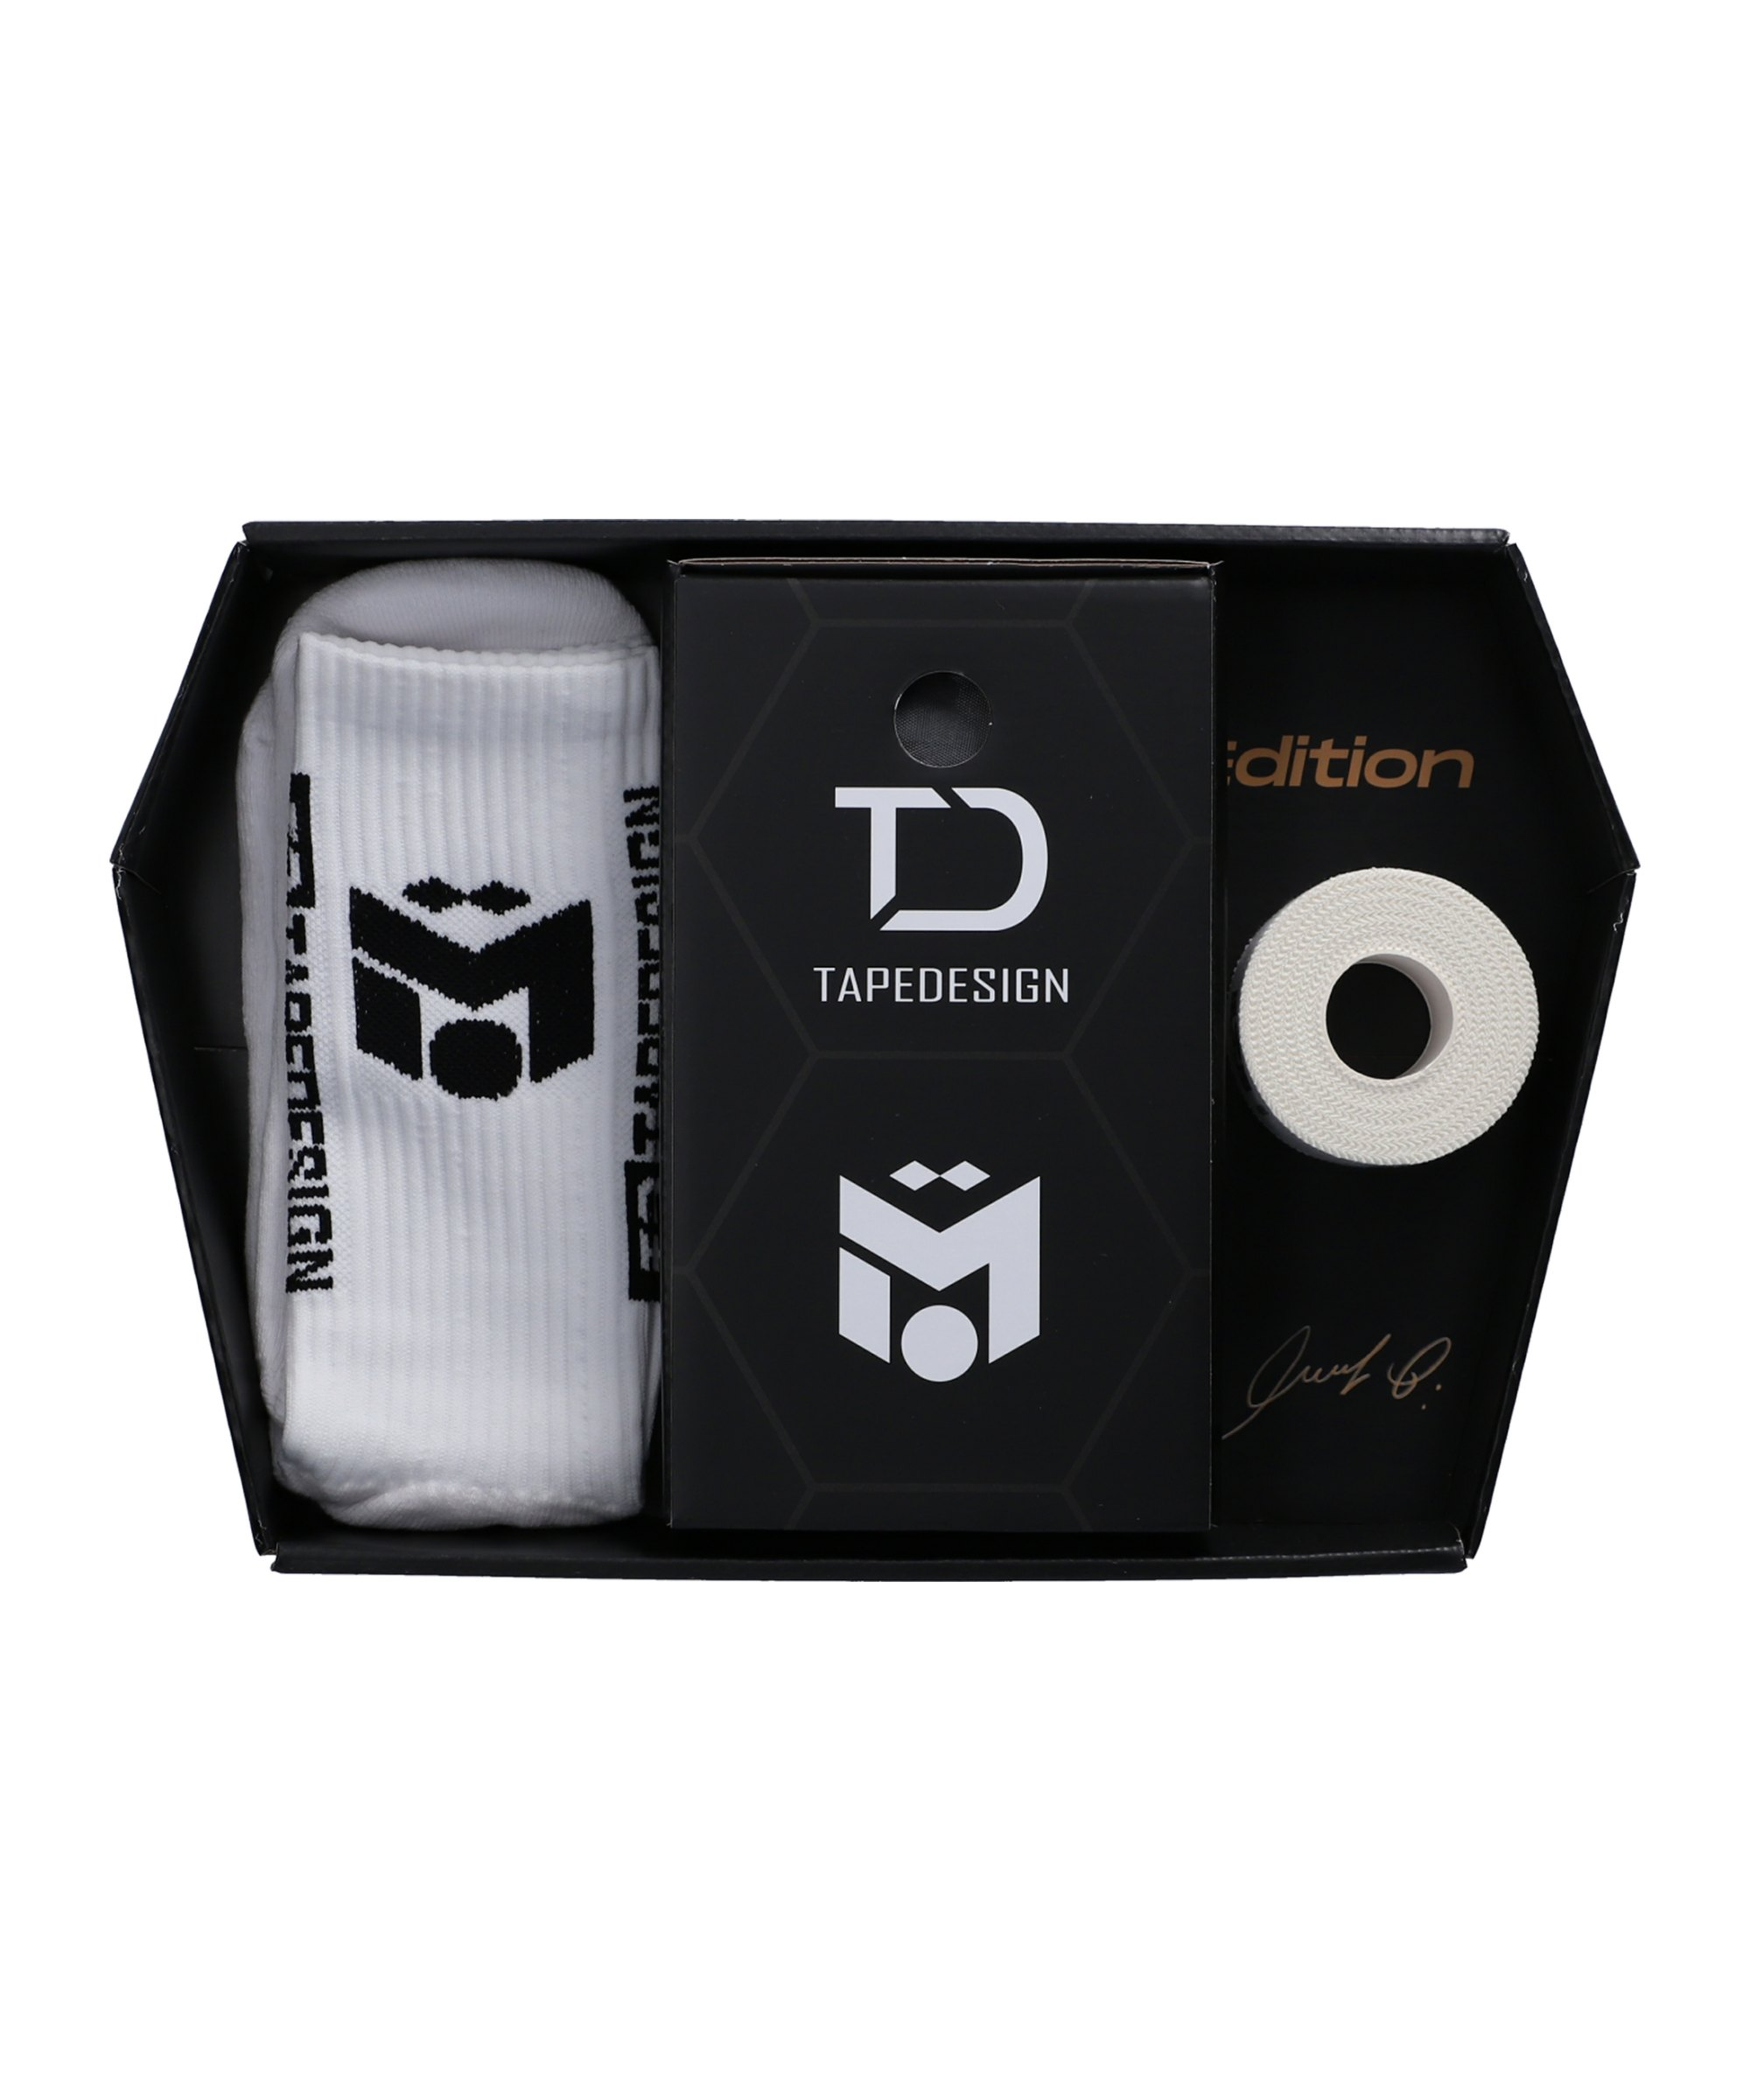 Tapedesign Mesut Özil Players Box Limited Special Edition - schwarz